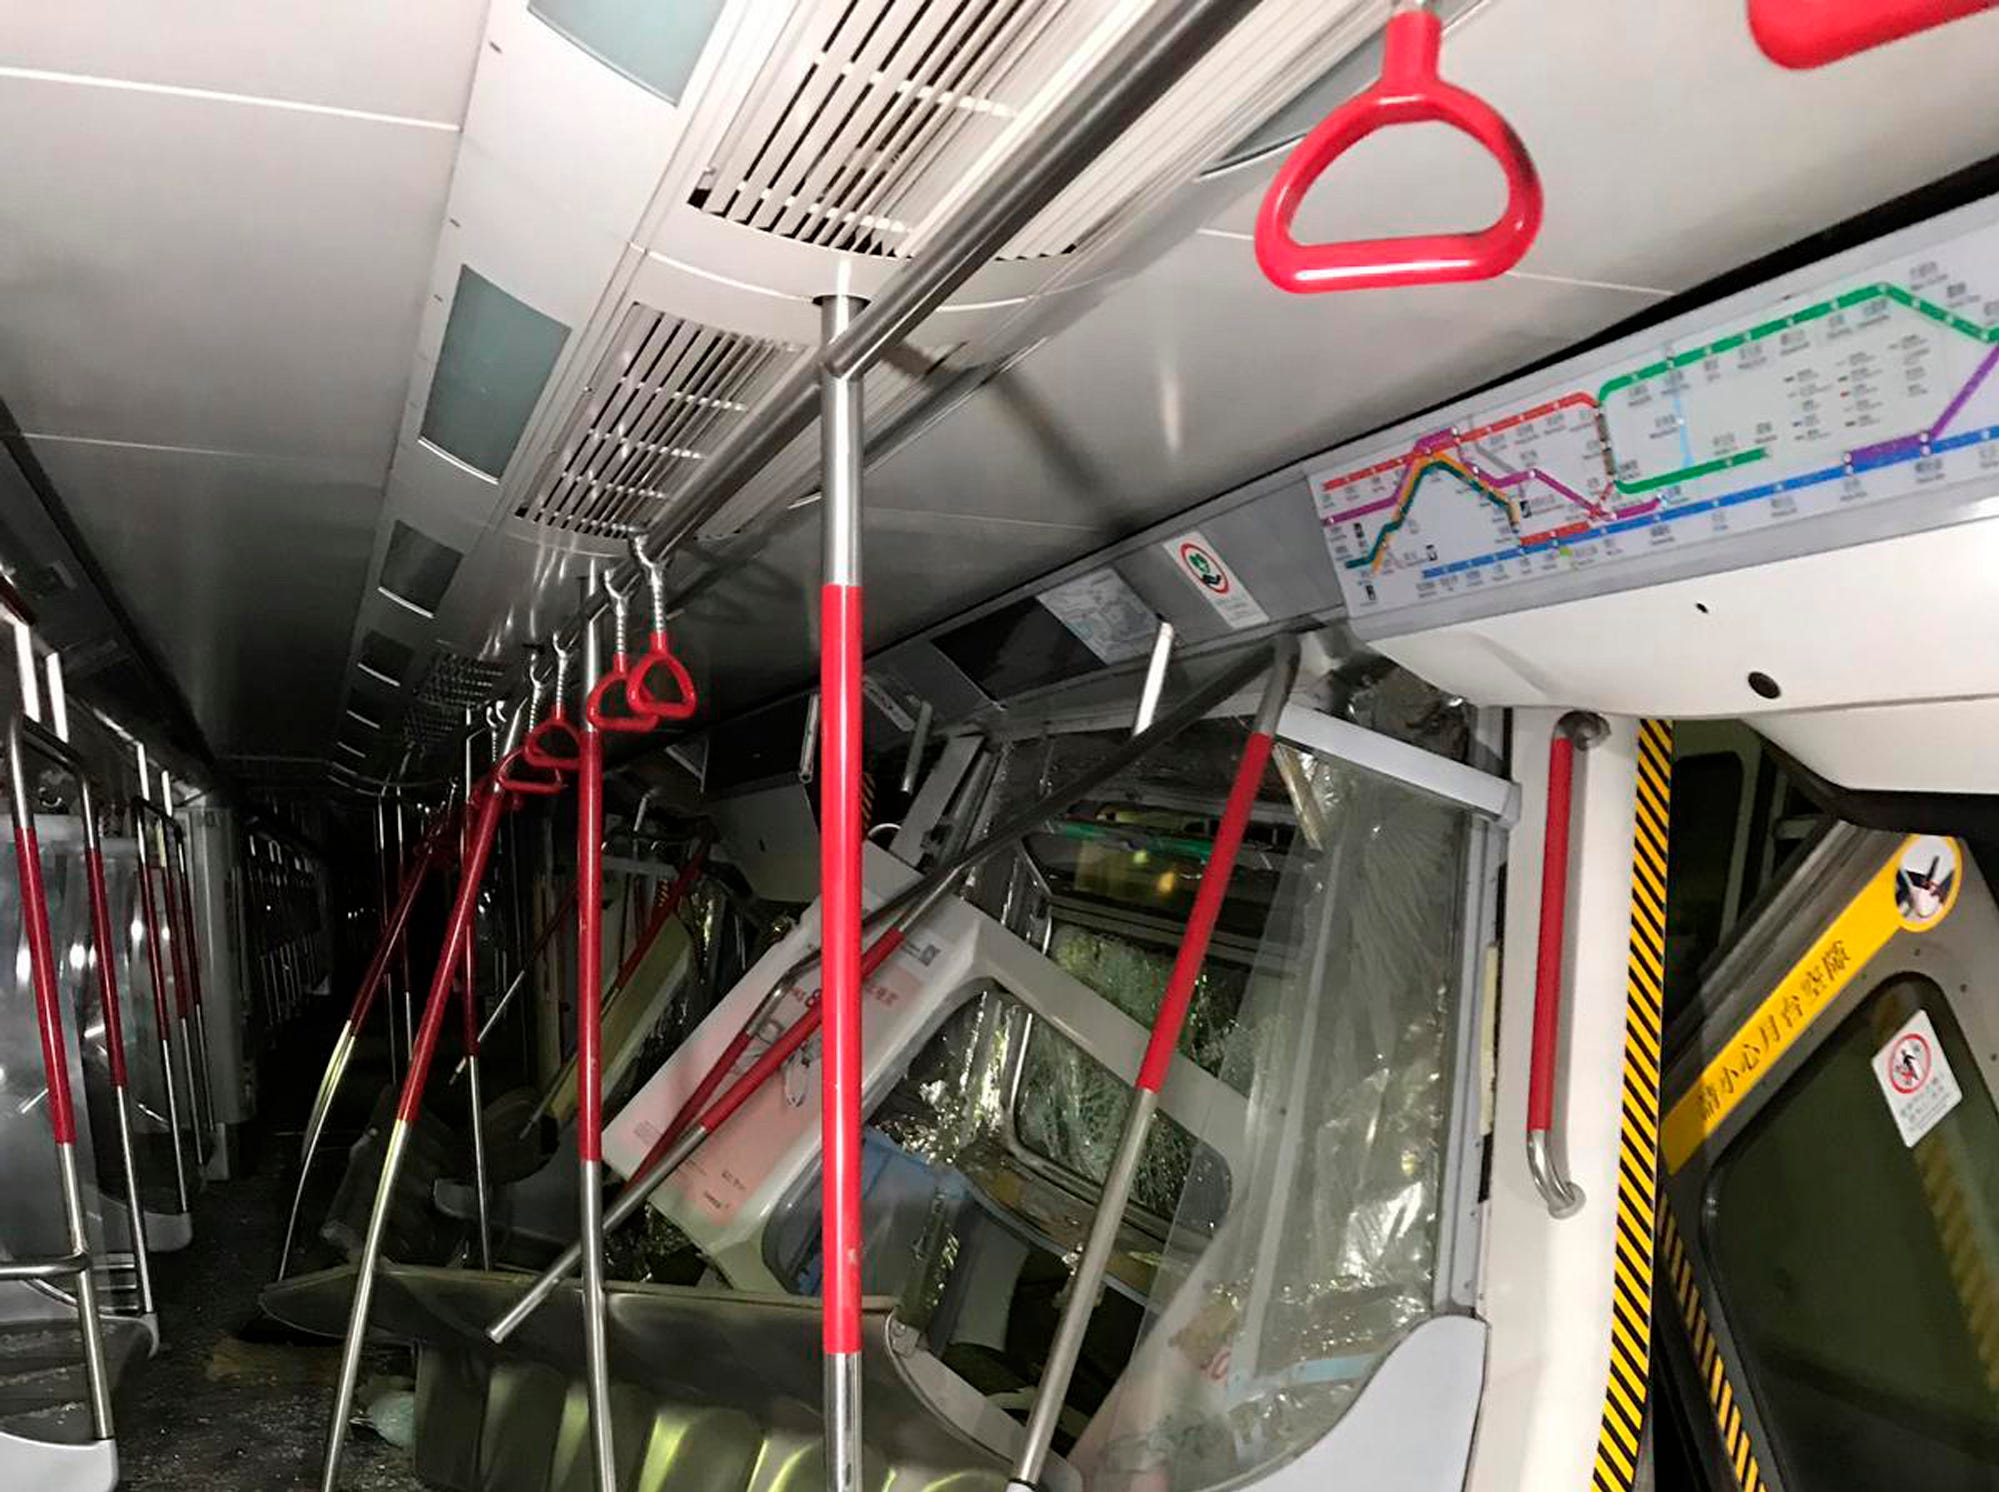 In this Monday, March, 18, 2019 photo released by MTR Corporation, two MTR trains are seen after the collision in the morning on the Tsuen Wan Line during testing of the the rail company's new signaling system in Hong Kong. Two drivers suffered minor injuries and were taken to hospital.